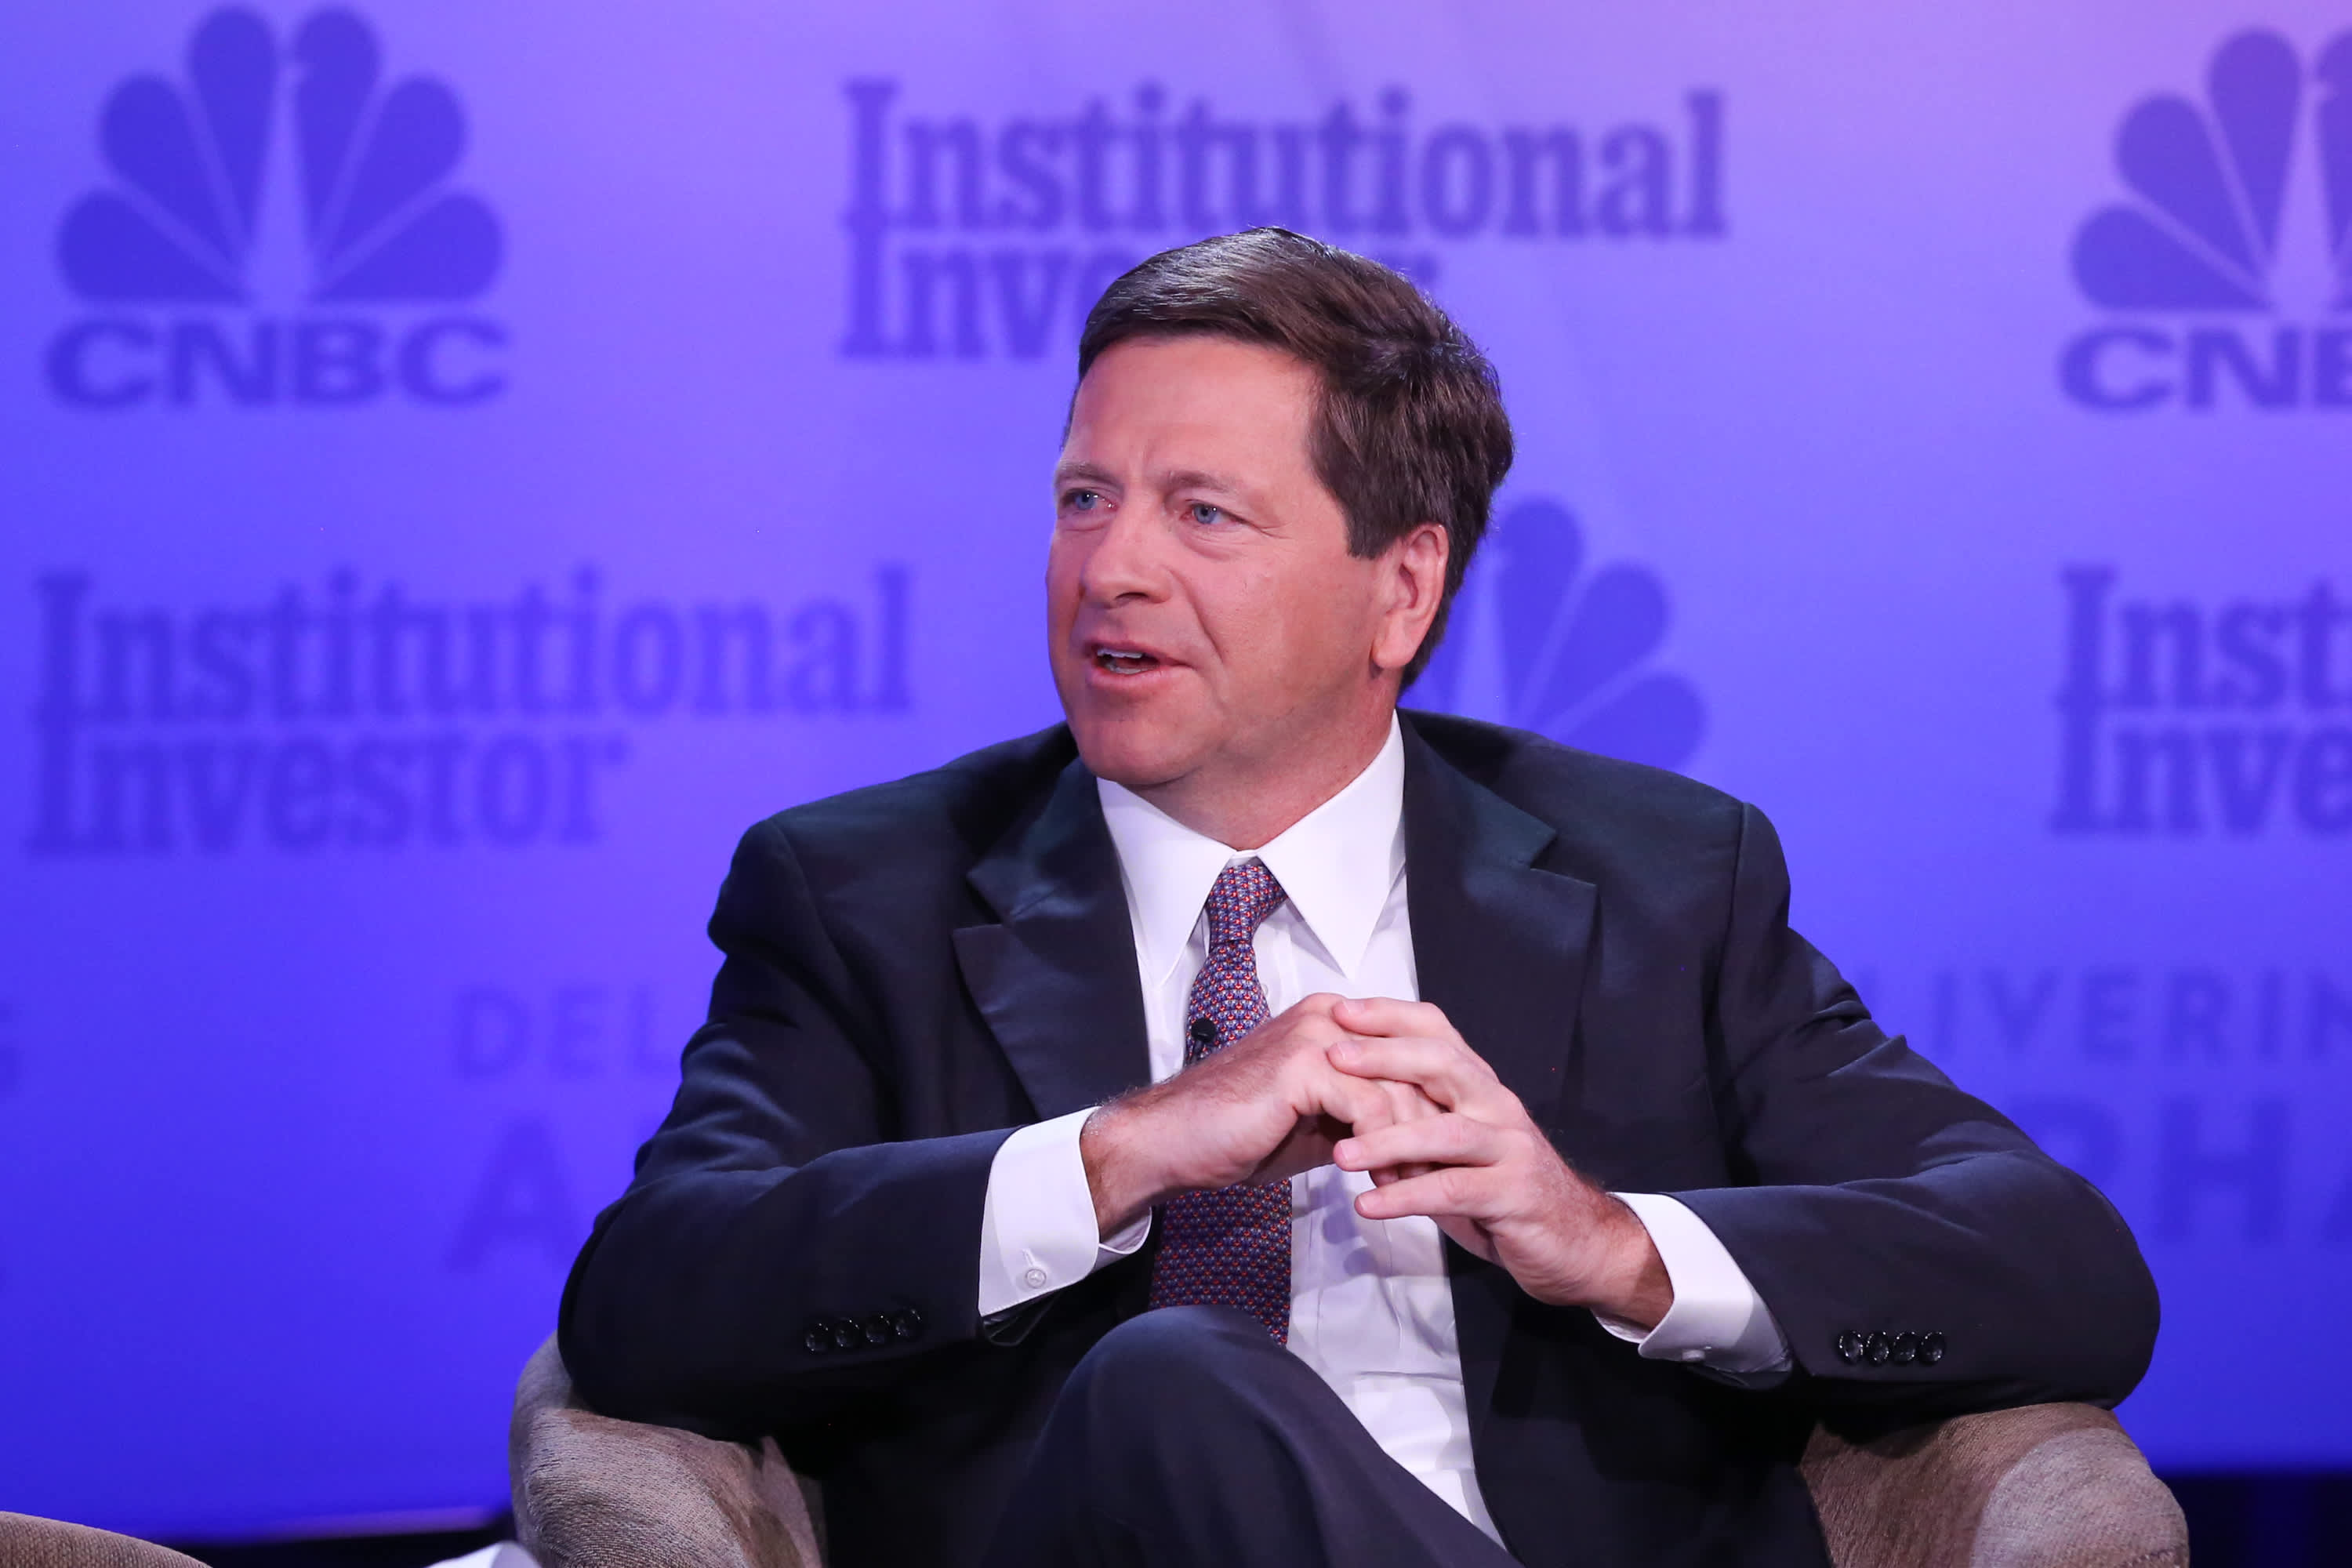 'We don't regulate euphoria,' says former SEC chairman Jay Clayton, who breaks down why social media will likely continue to influence investing